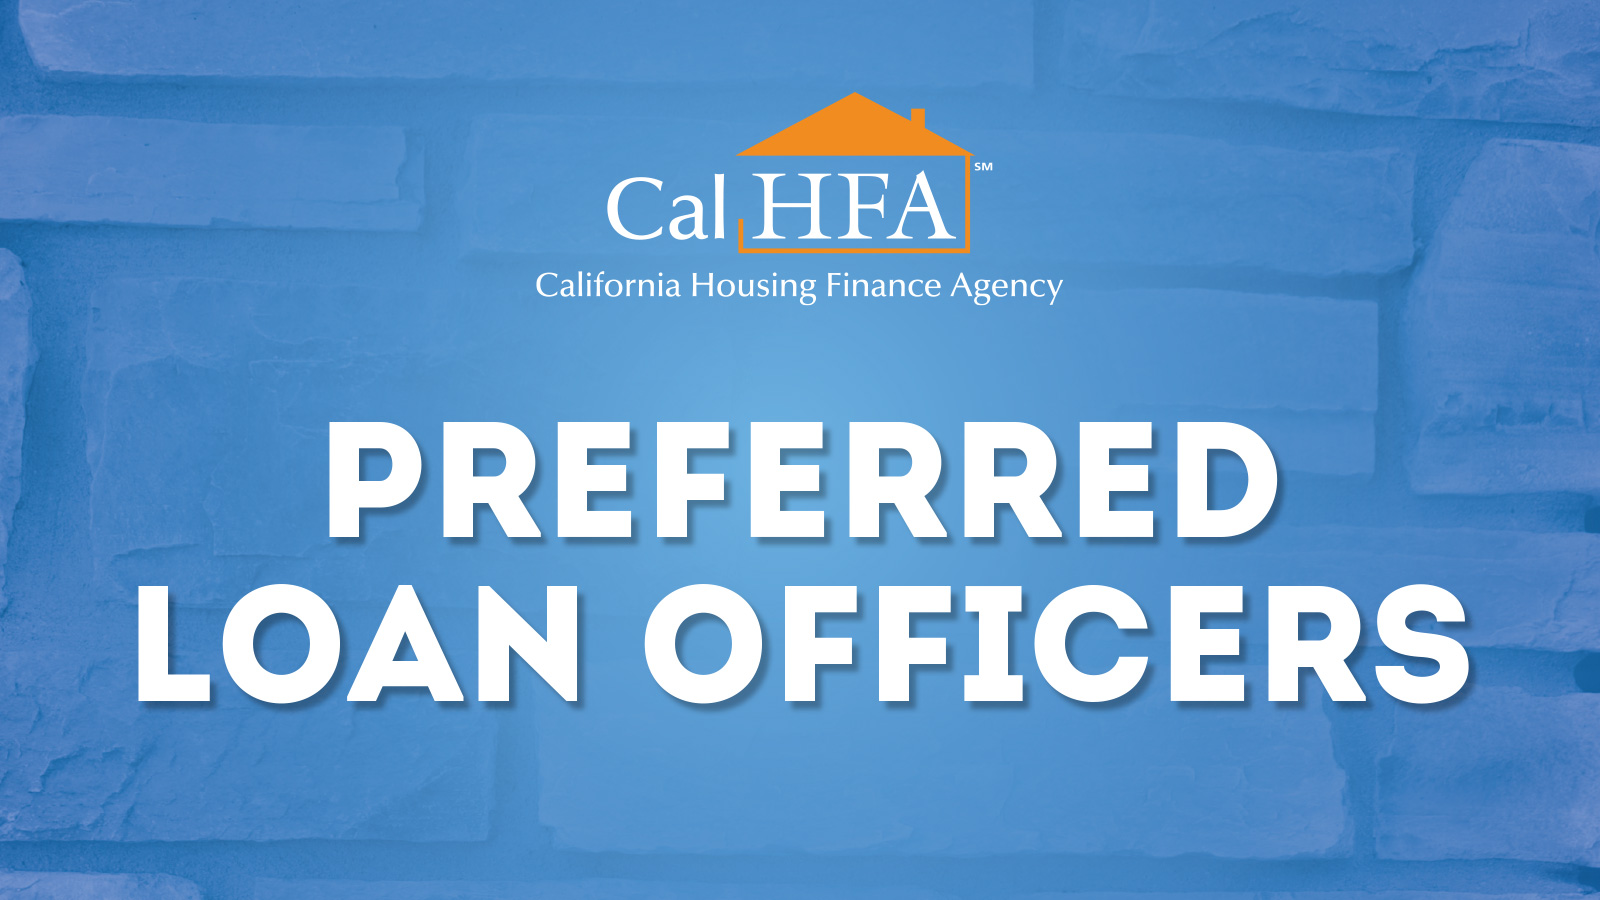 Find a Loan Officer for your Home Loan | CALHFA